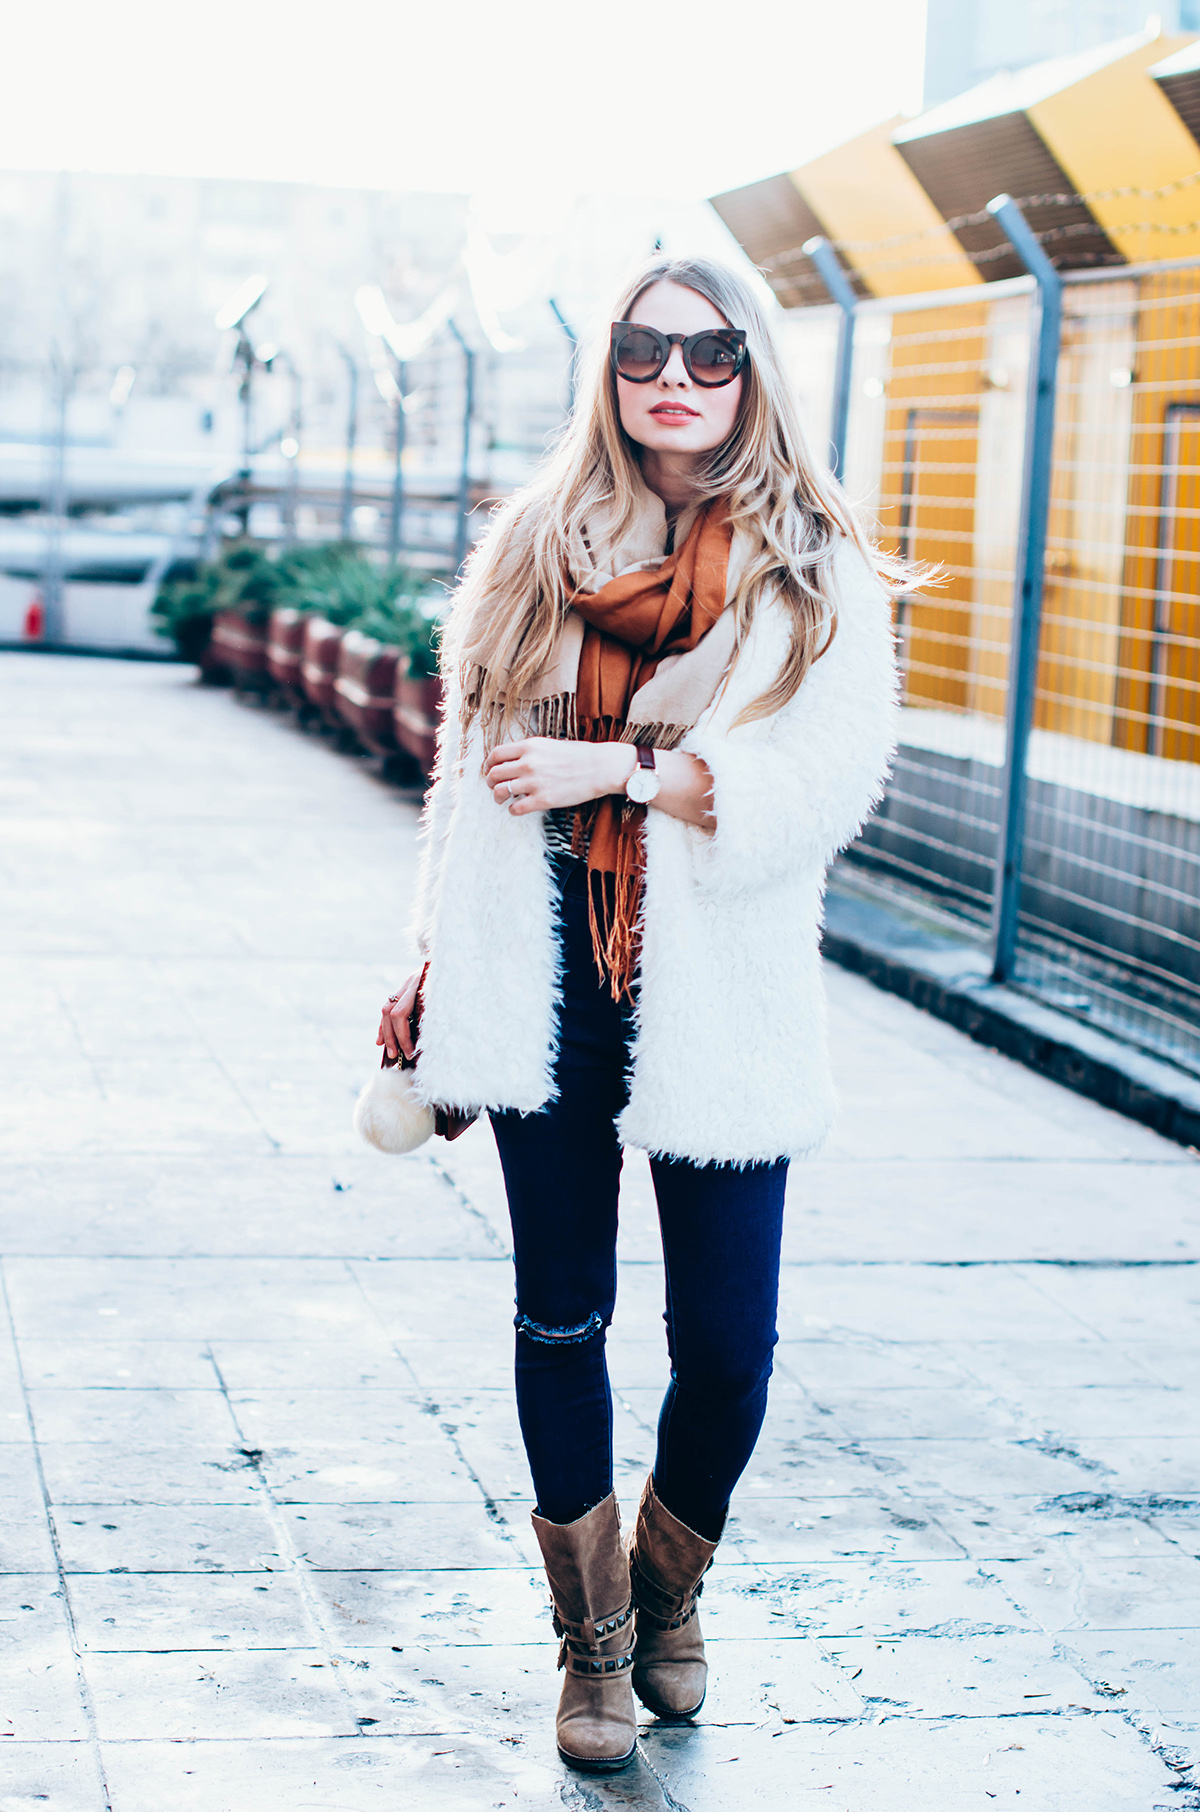 white-fluffy-cardgan-ripped-skinny-jeans-suede-boots-camel-scarf-fluffy-keyrng-cat-eye-sunglasses (3)